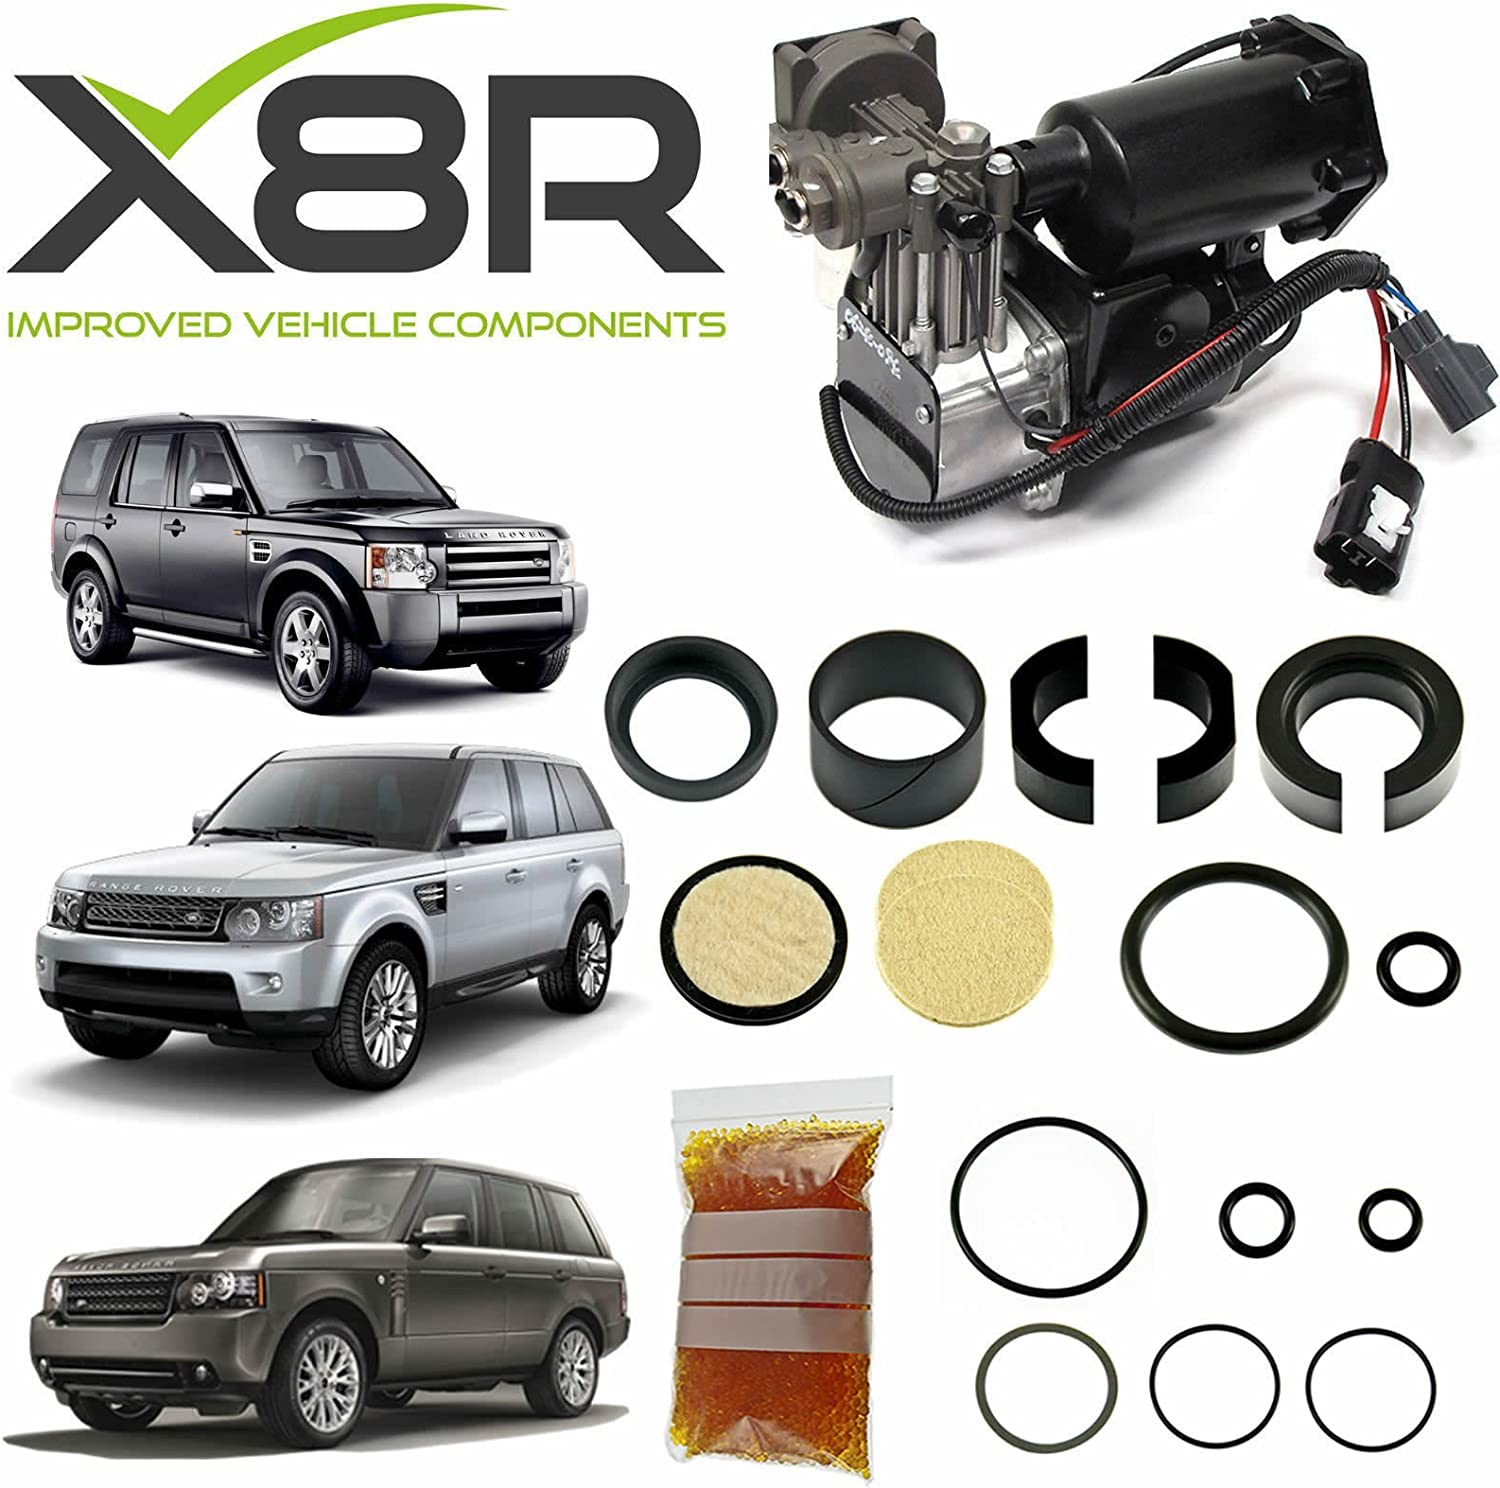 X8R REPAIR 55% OFF KIT FOR AIR COMPATIBL DRYER Ranking TOP8 COMPRESSOR AND SUSPENSION